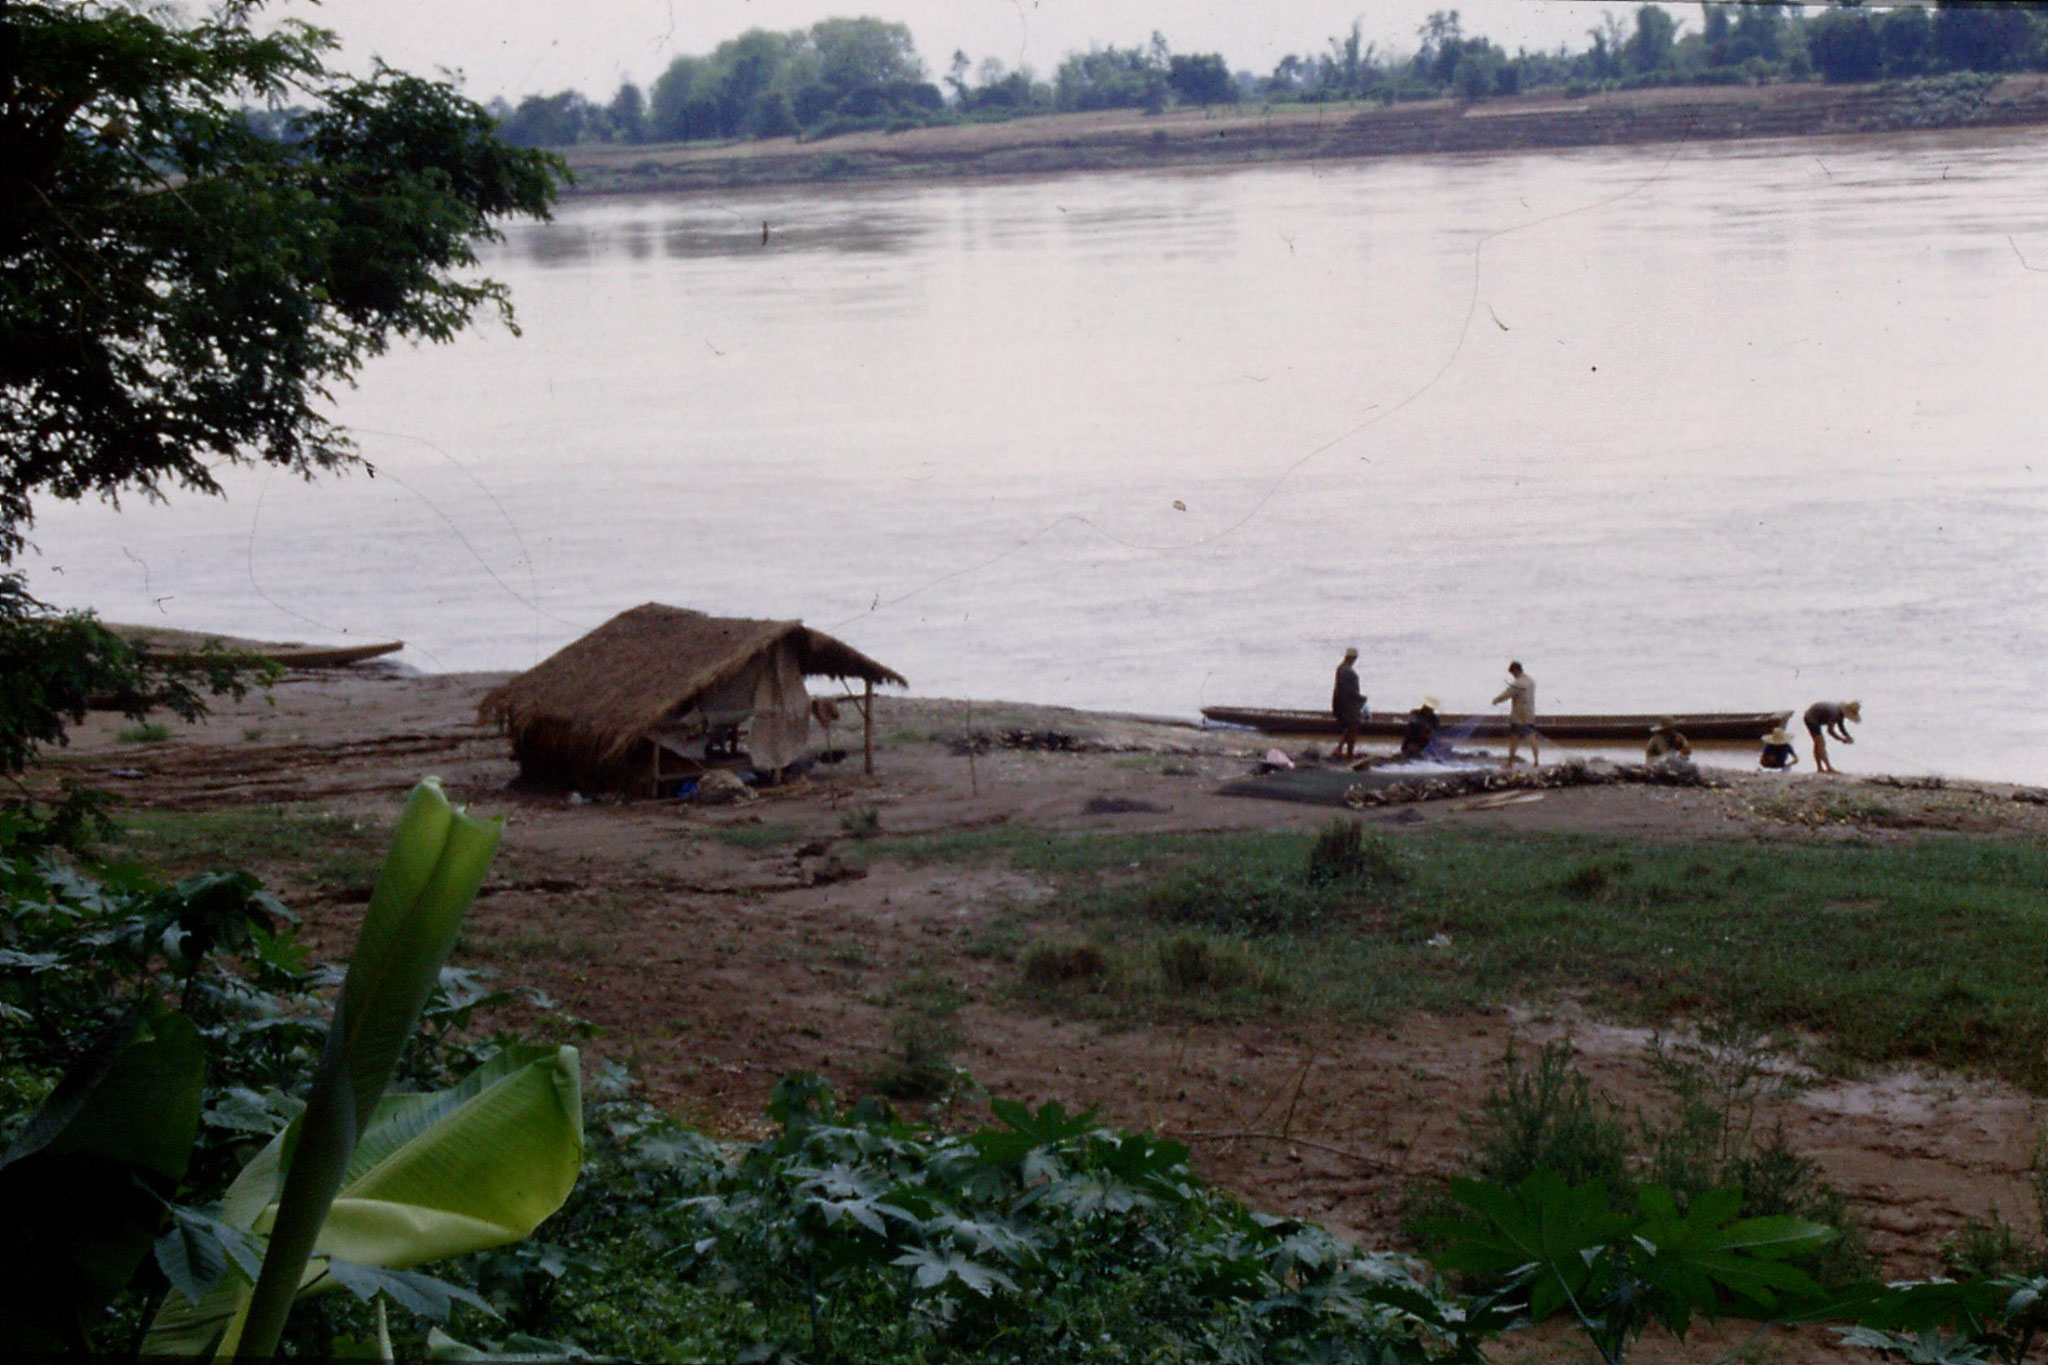 30/5/1990: 24: east of Nong Khai, Mekong river